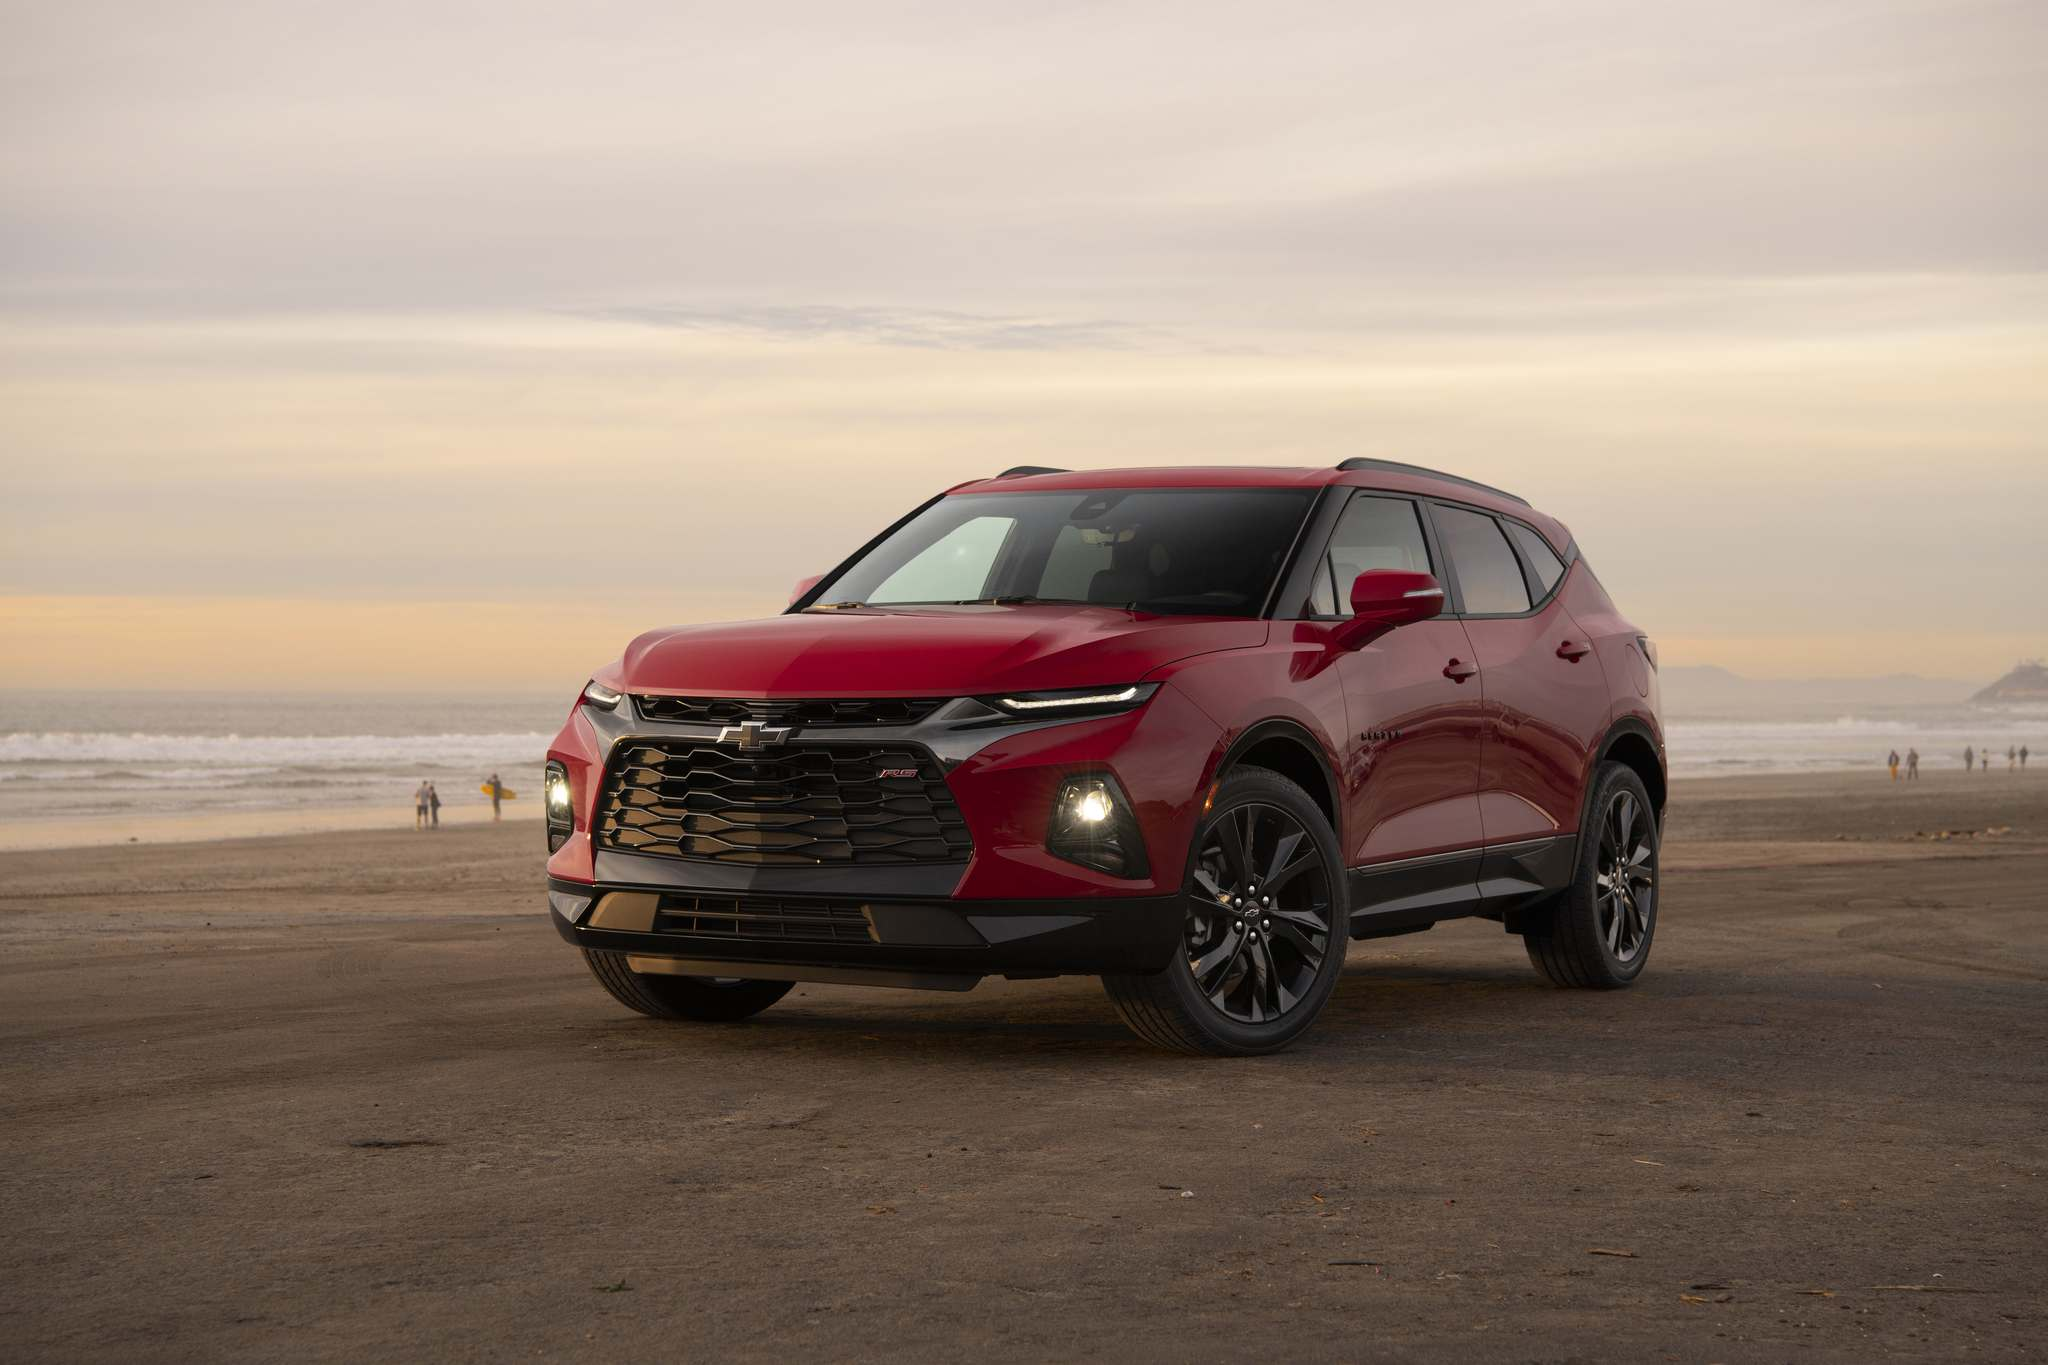 General MotorsChevrolet resurrected the Blazer name from years gone by to adorn its newest five-passenger crosssover SUV.